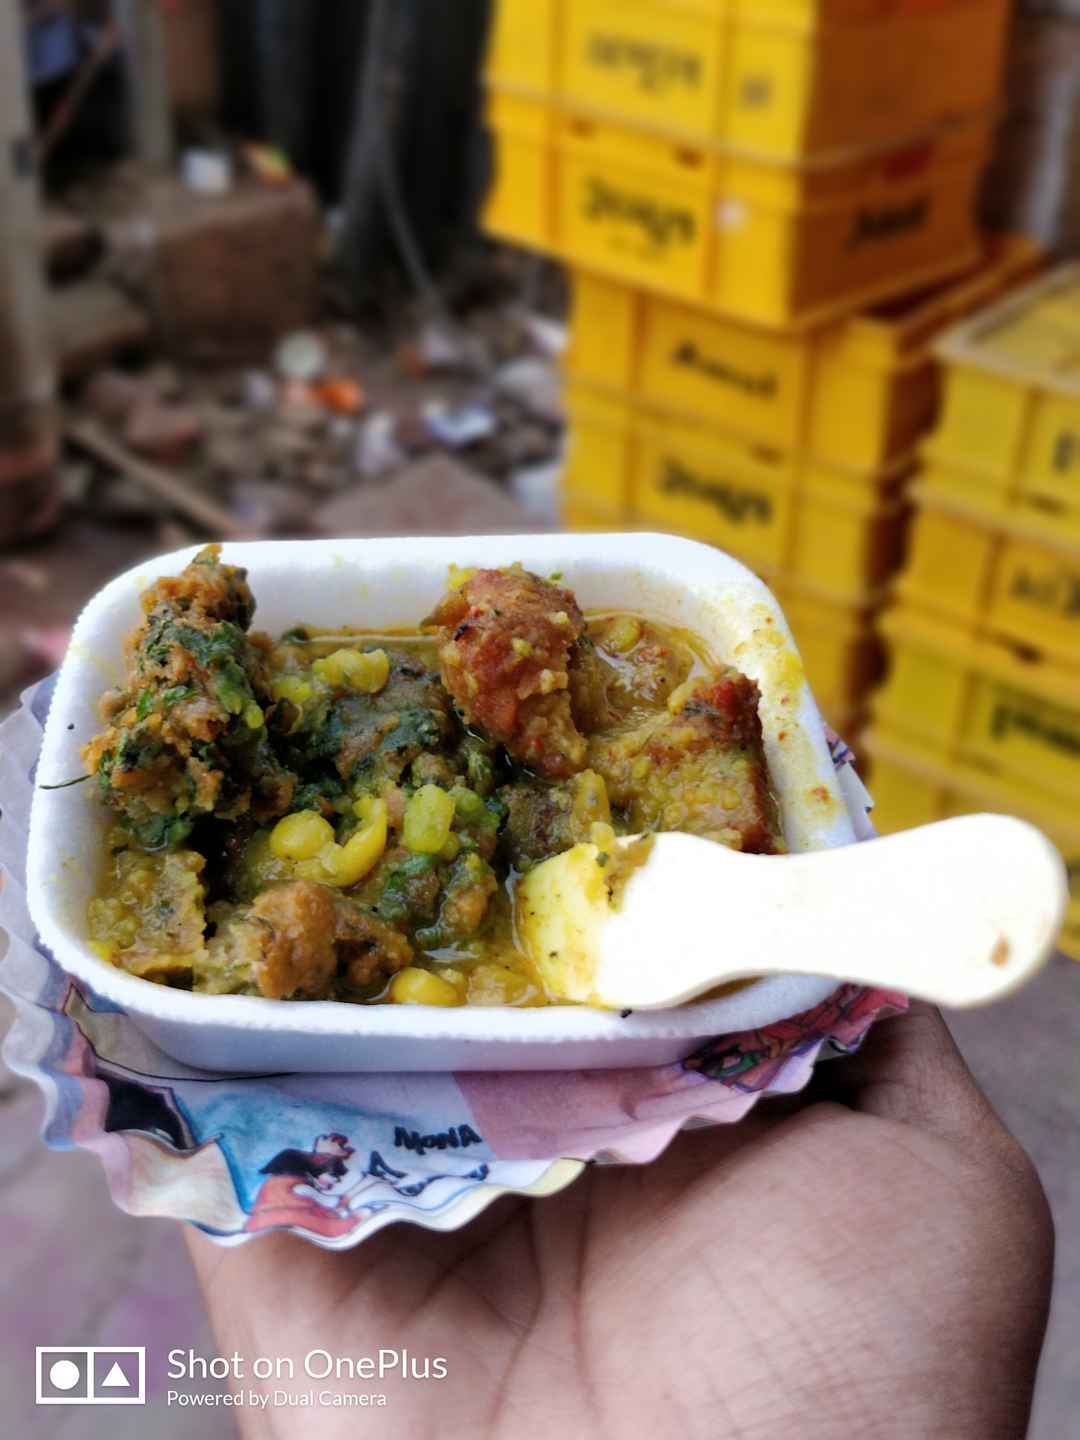 Food Trail of ancient Varanasi with modern taste #foodtrail #IWillGoAnywhereForFood